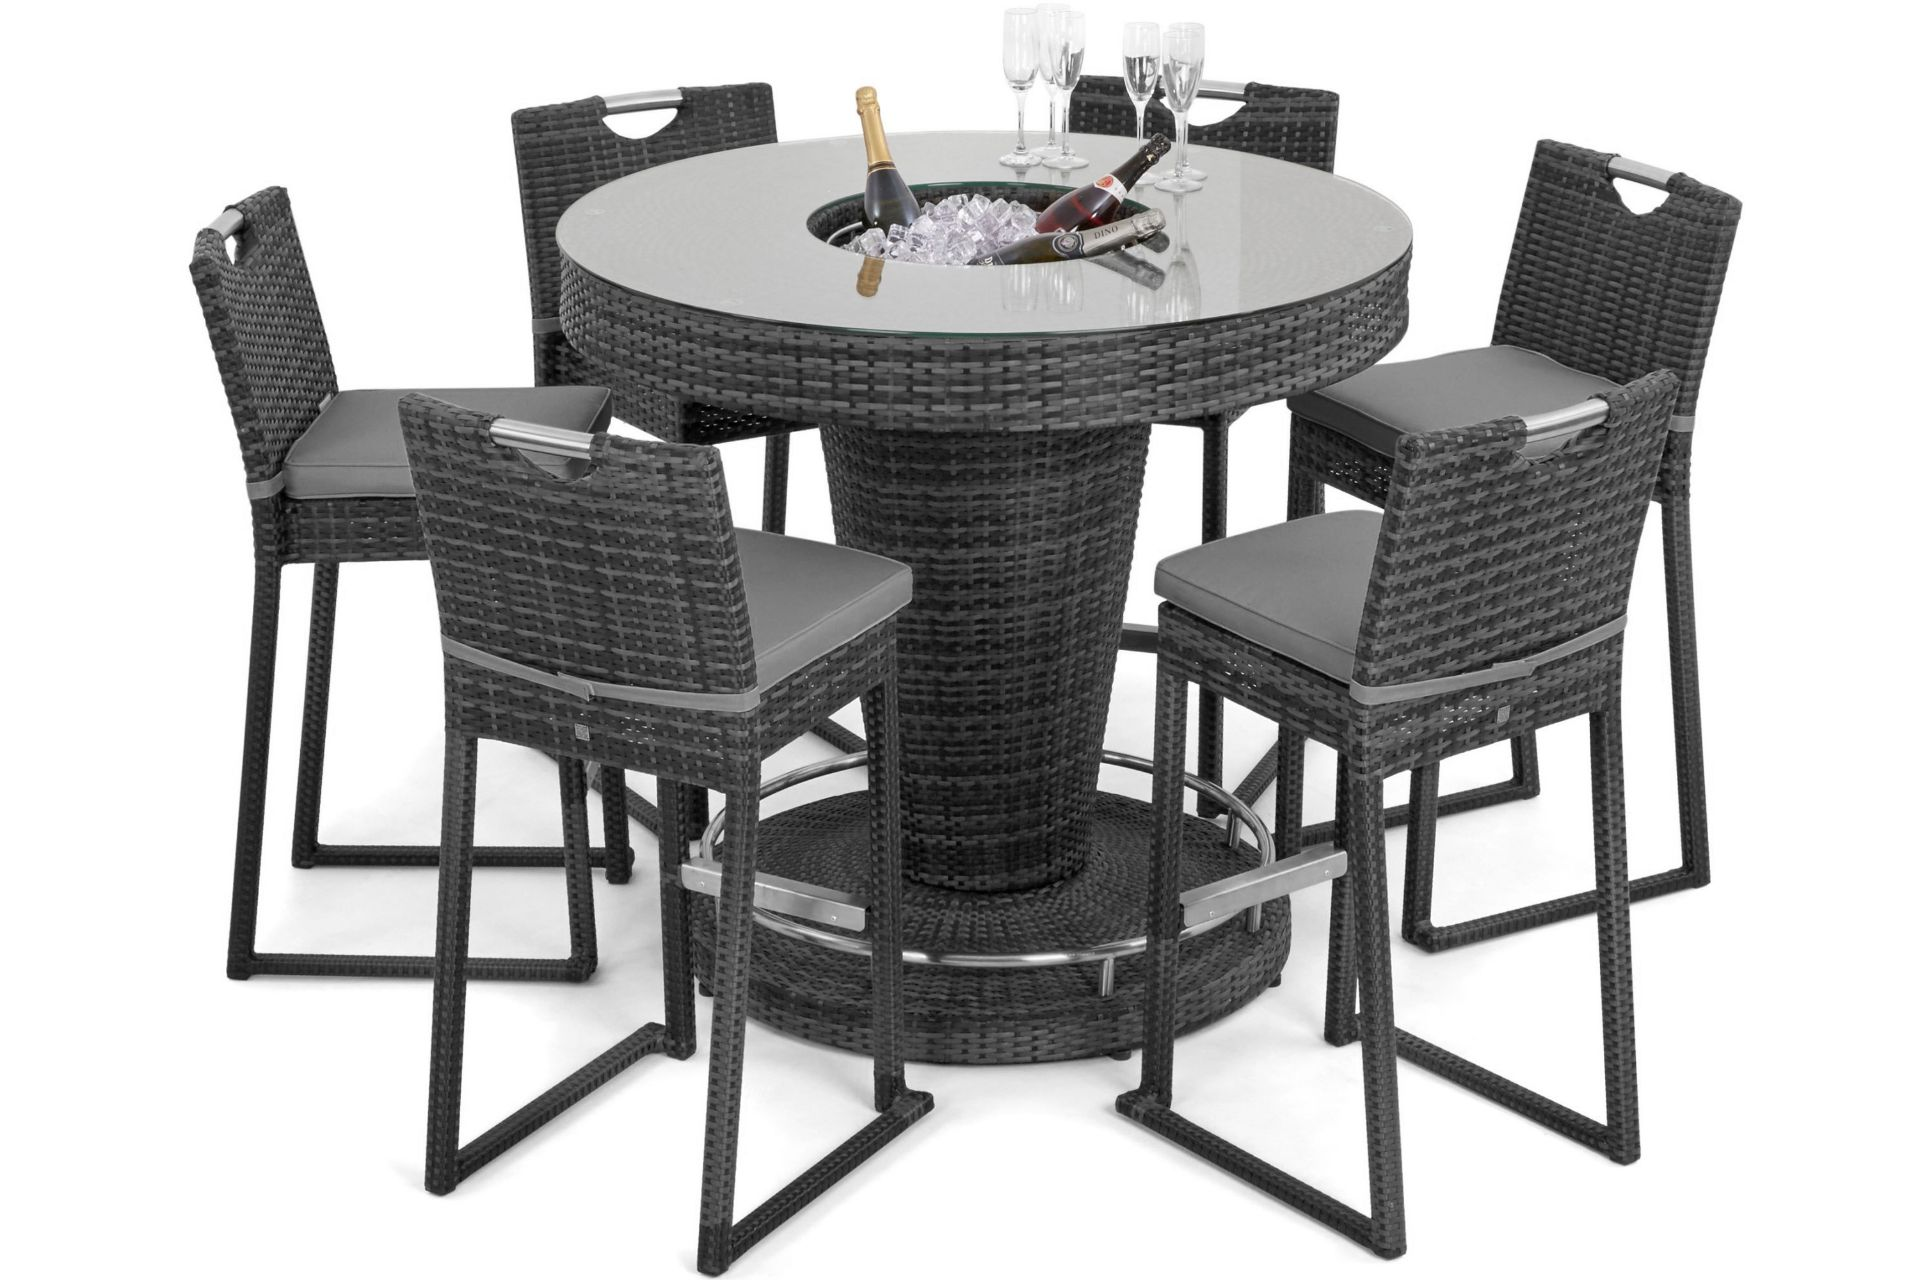 Lot 18 - Rattan 6 Seat Bar Set With Ice Bucket Feature (Grey) *BRAND NEW*